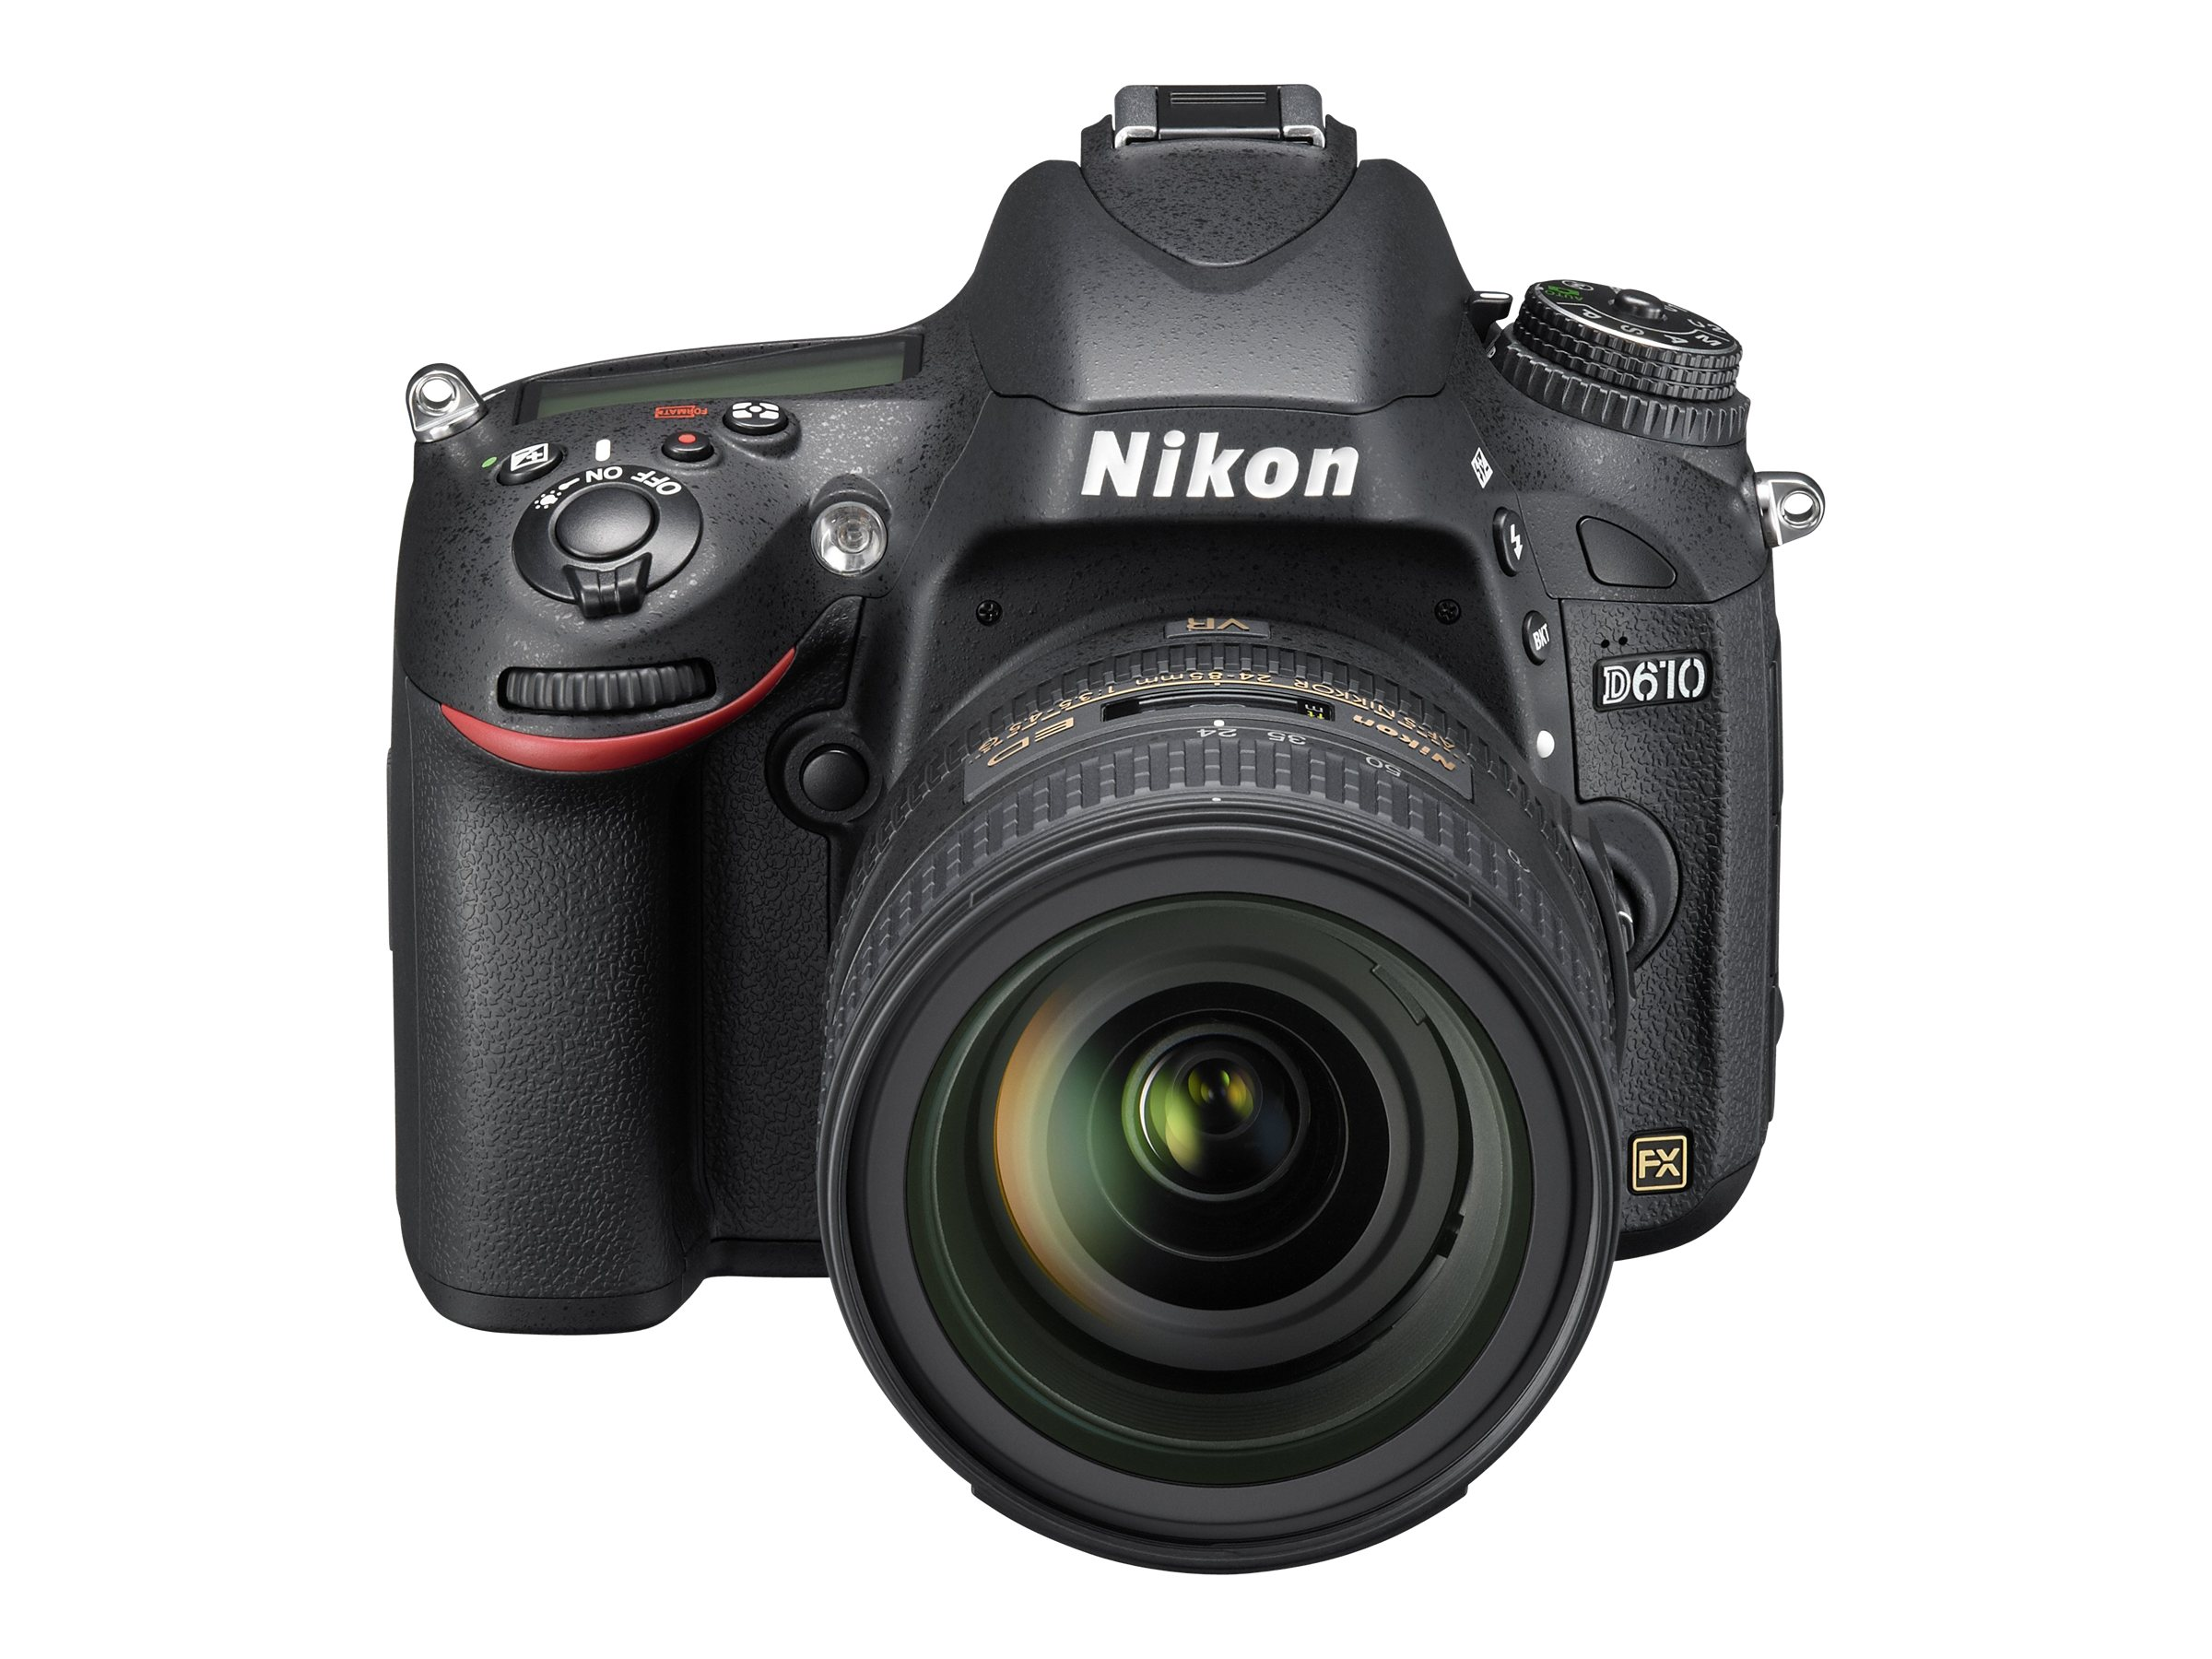 Nikon D610 FX-Format Digital SLR with 24-85mm VR Lens, 13305, 16466876, Cameras - Digital - SLR